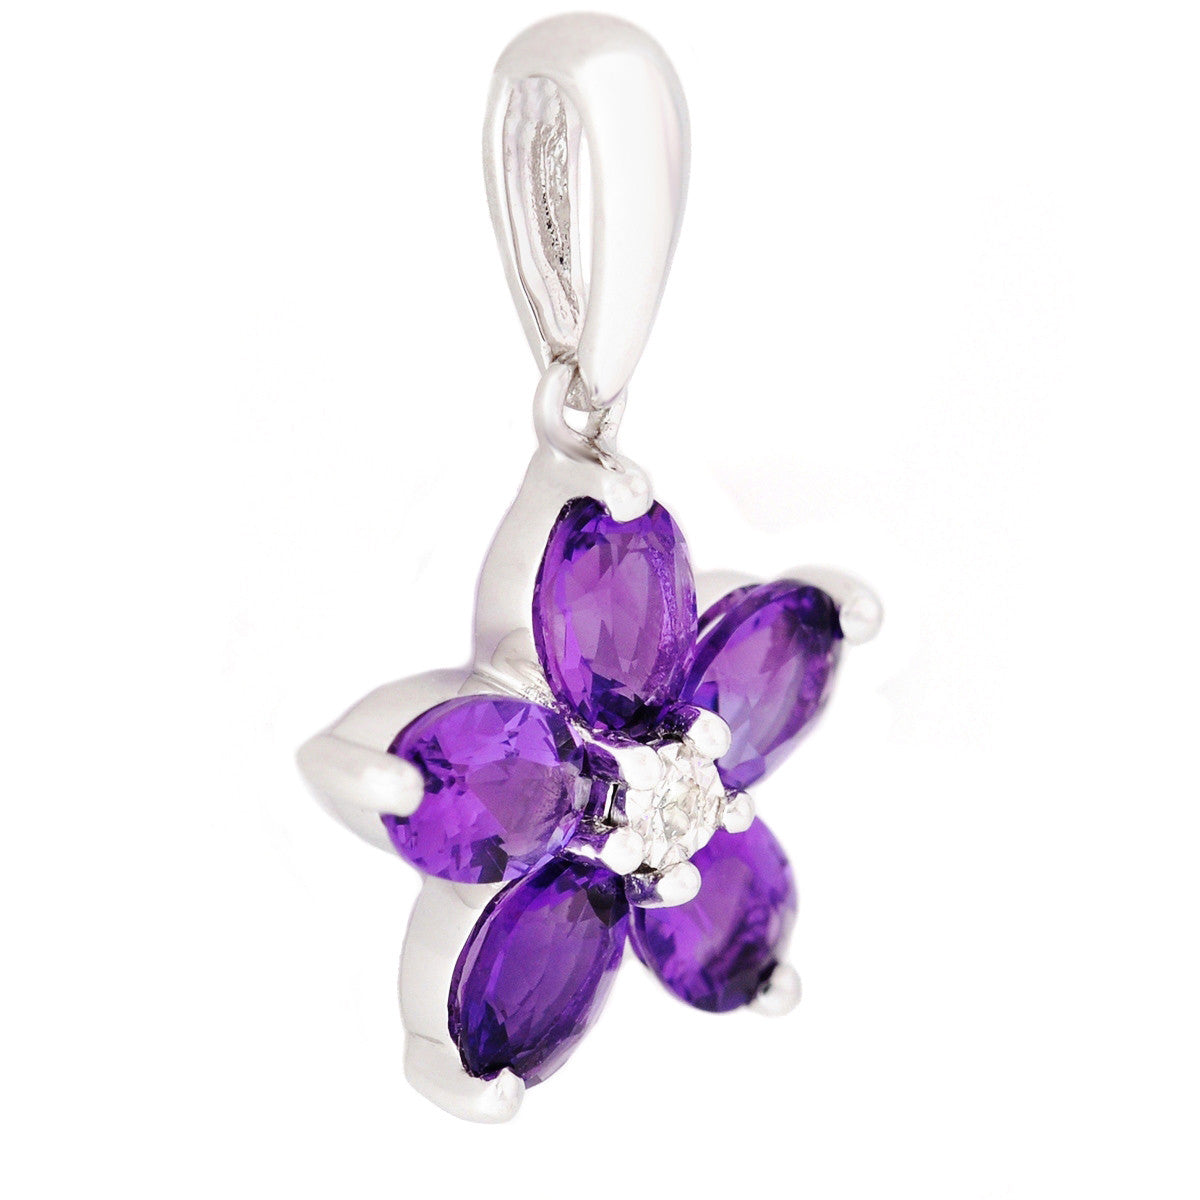 9K SOLID WHITE GOLD 0.70CT AFRICAN AMETHYST CLUSTER PENDANT WITH CENTRE DIAMOND.